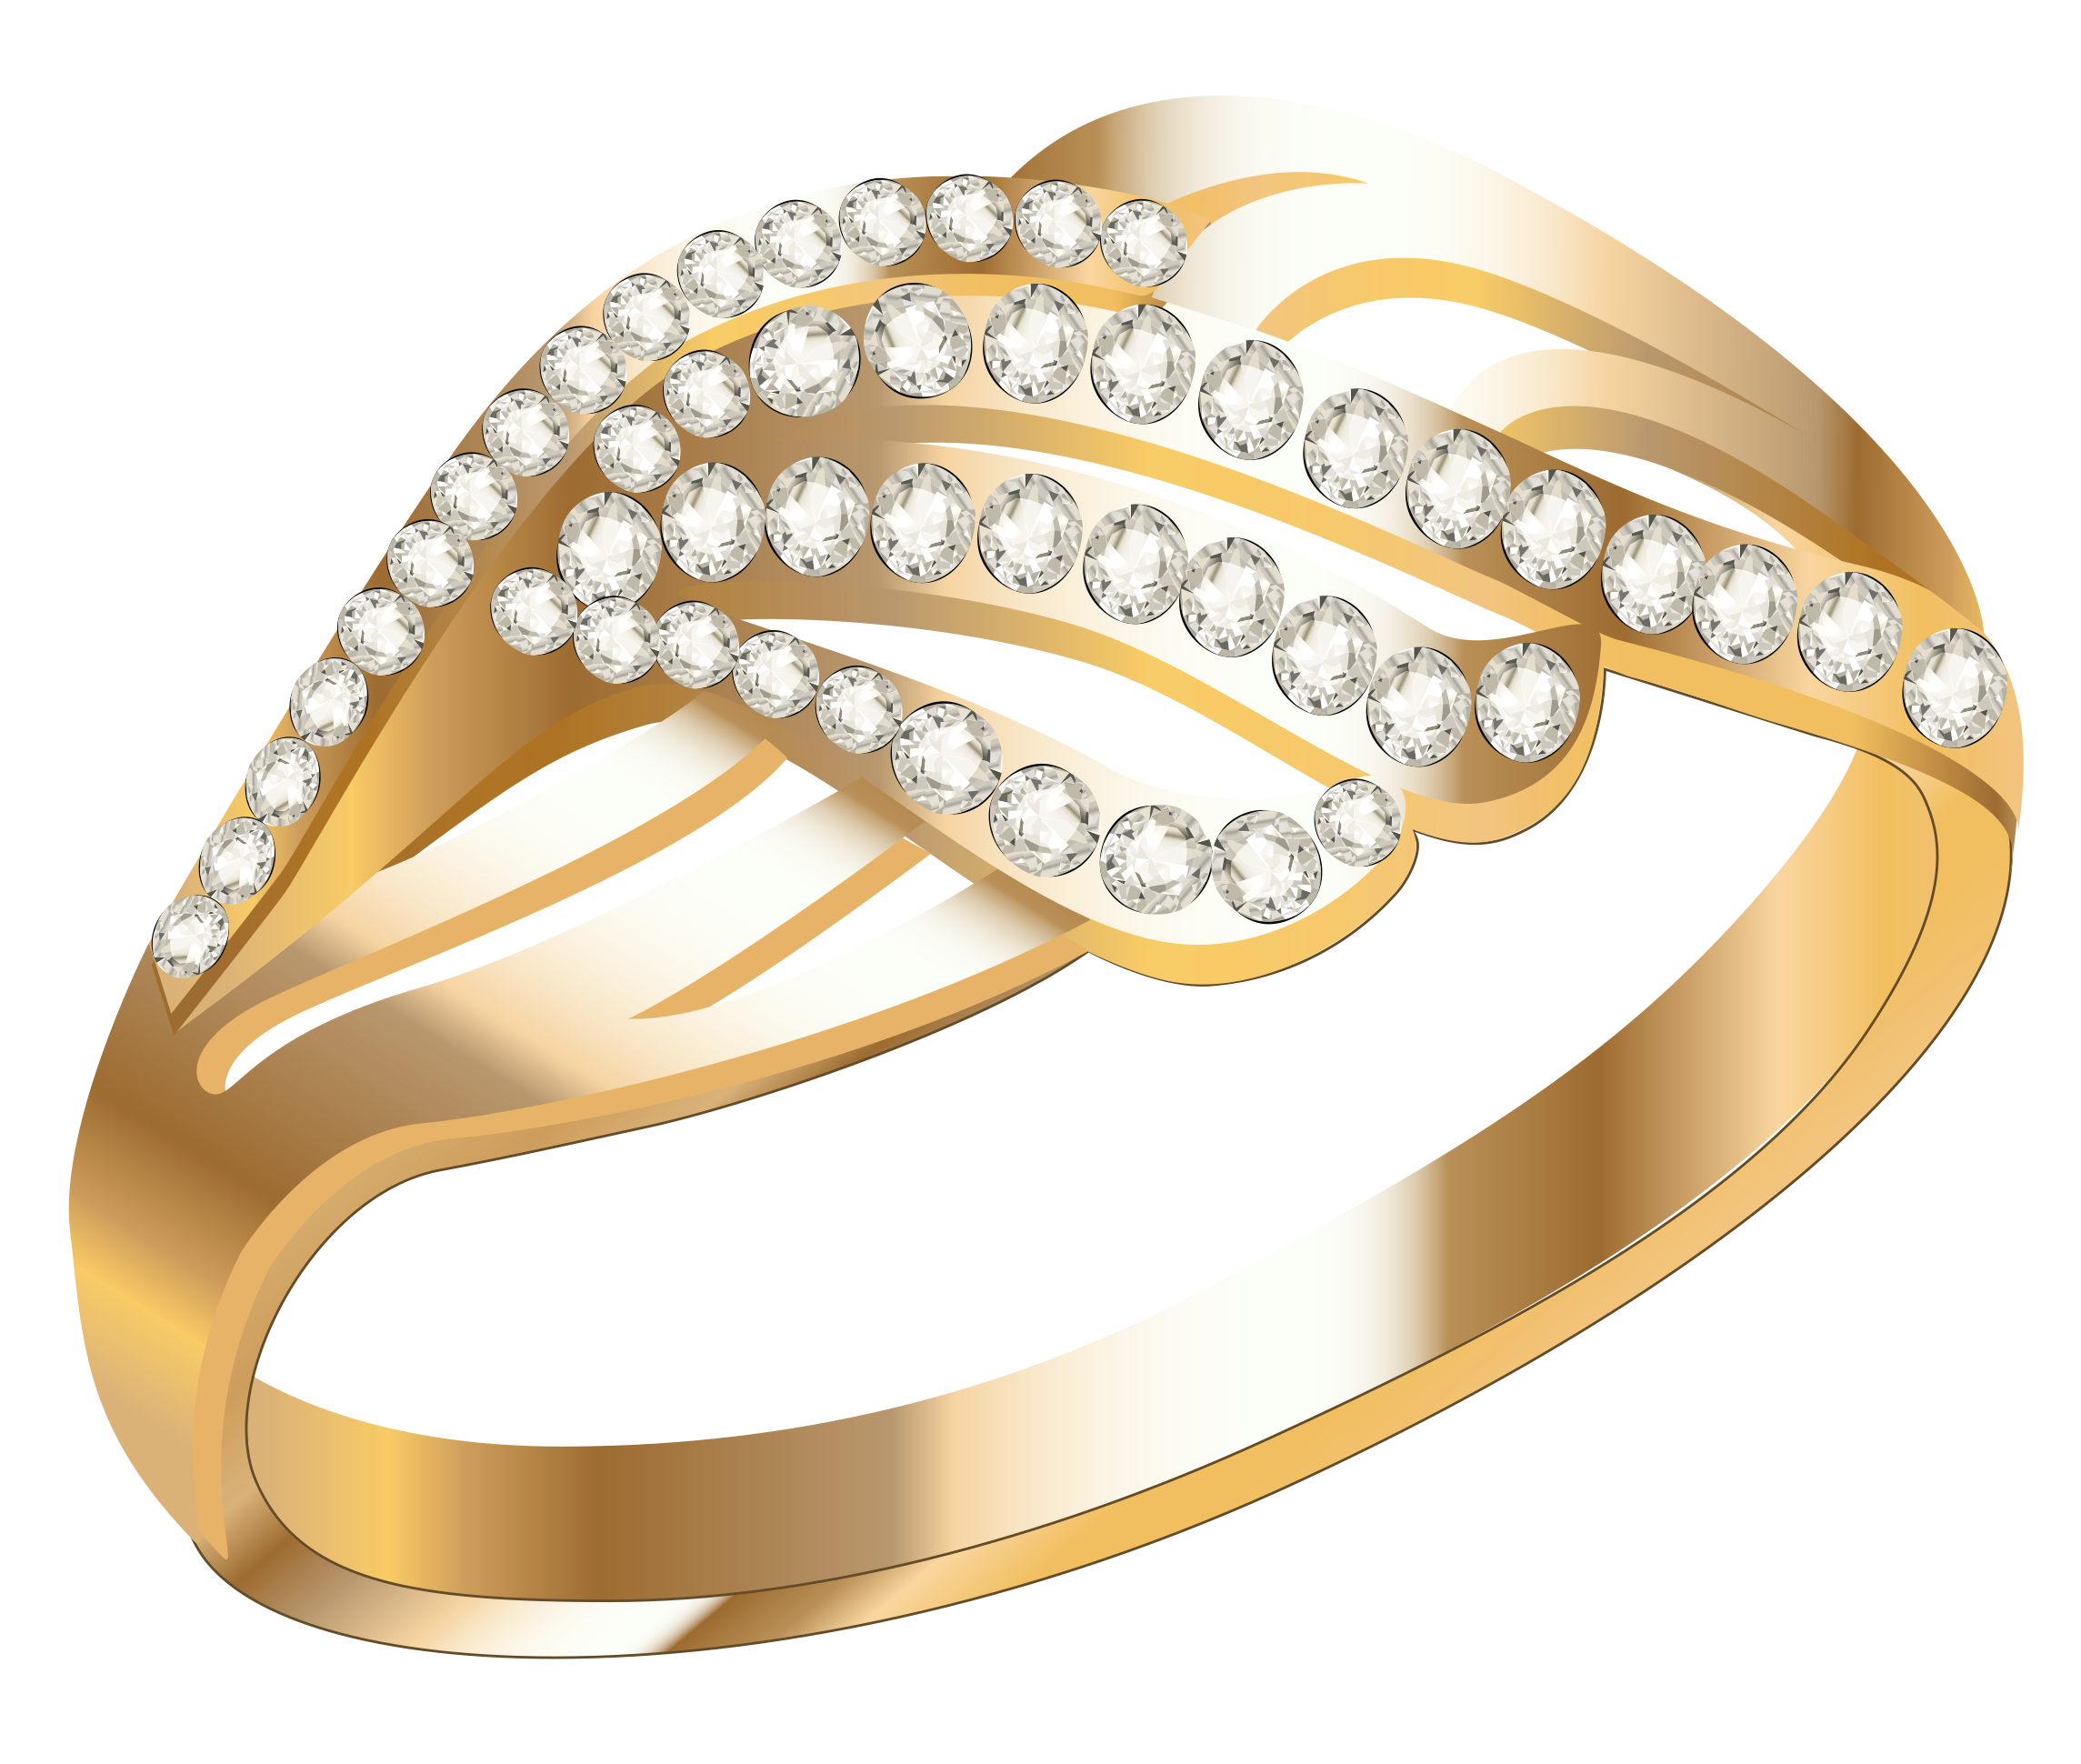 Diamond, Ring, Jewellery Png image #36047 - Jewellery PNG